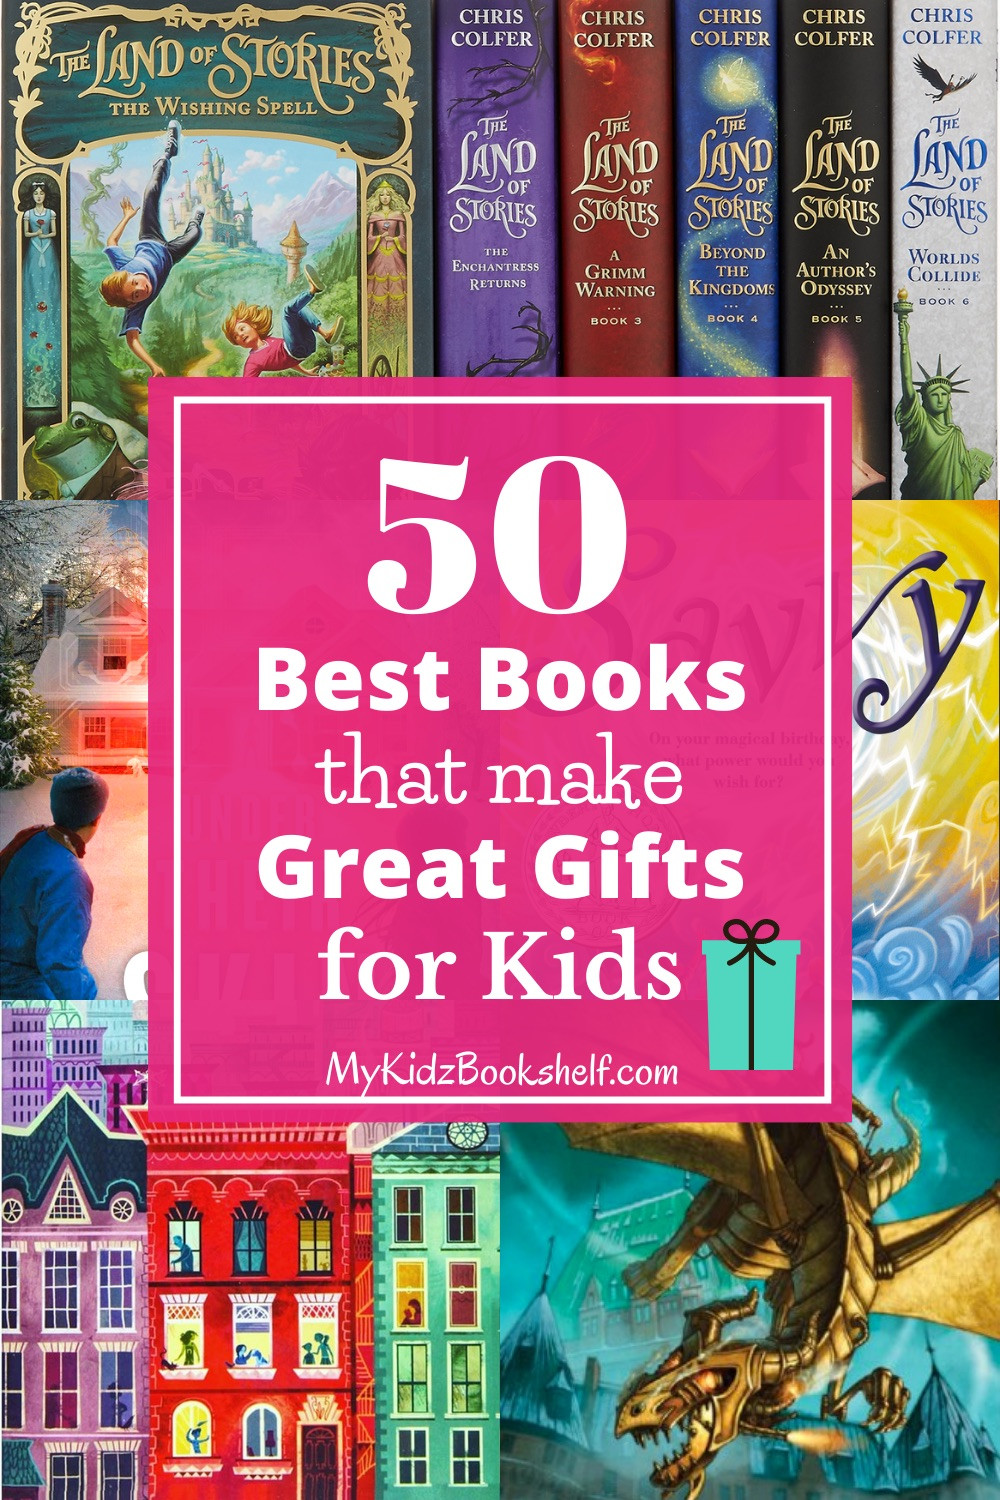 50 Best Books Great Gifts for Kids Pinterest Pin with books in background